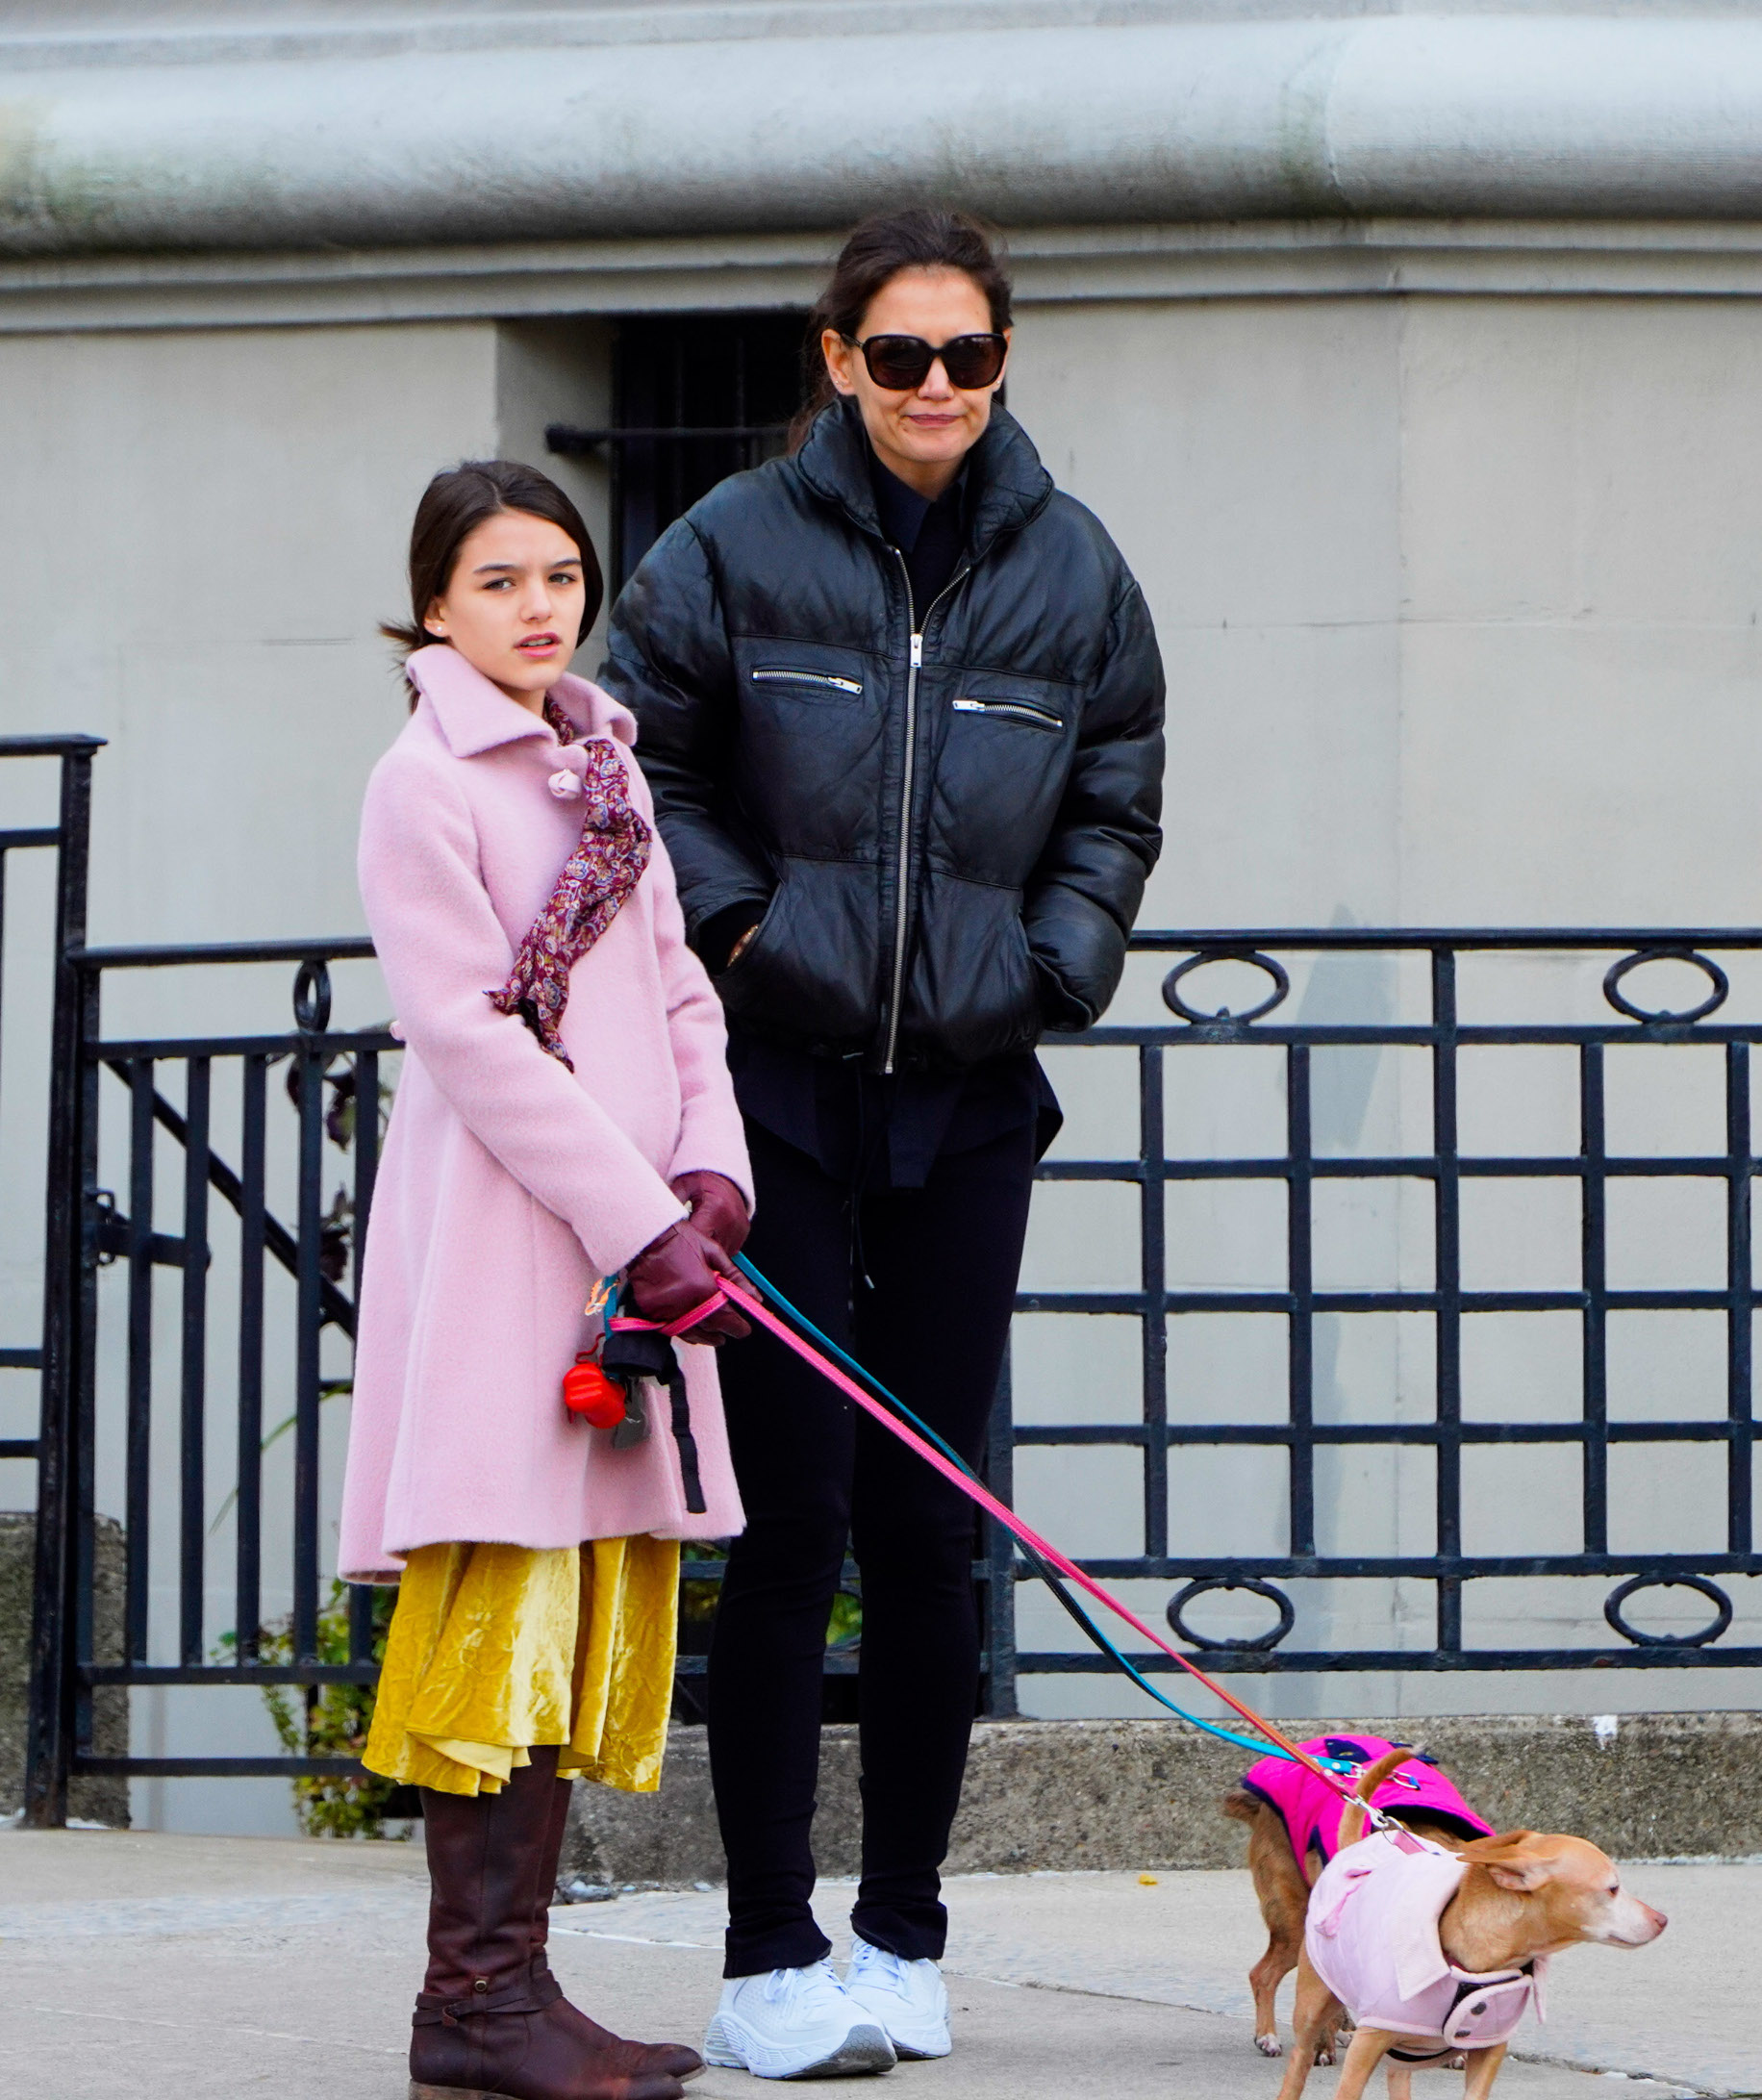 11/09/2019 EXCLUSIVE: Katie Holmes and Suri Cruise bundle up for a dog walk in New York City. Katie kept things casual wearing a black bomber jacket paired with black sweats and white trainers. Suri sported a pink top coat over a yellow velvet dress and cordovan boots., Image: 482013062, License: Rights-managed, Restrictions: Exclusive NO usage without agreed price and terms. Please contact sales@theimagedirect.com, Model Release: no, Credit line: TheImageDirect.com / The Image Direct / Profimedia